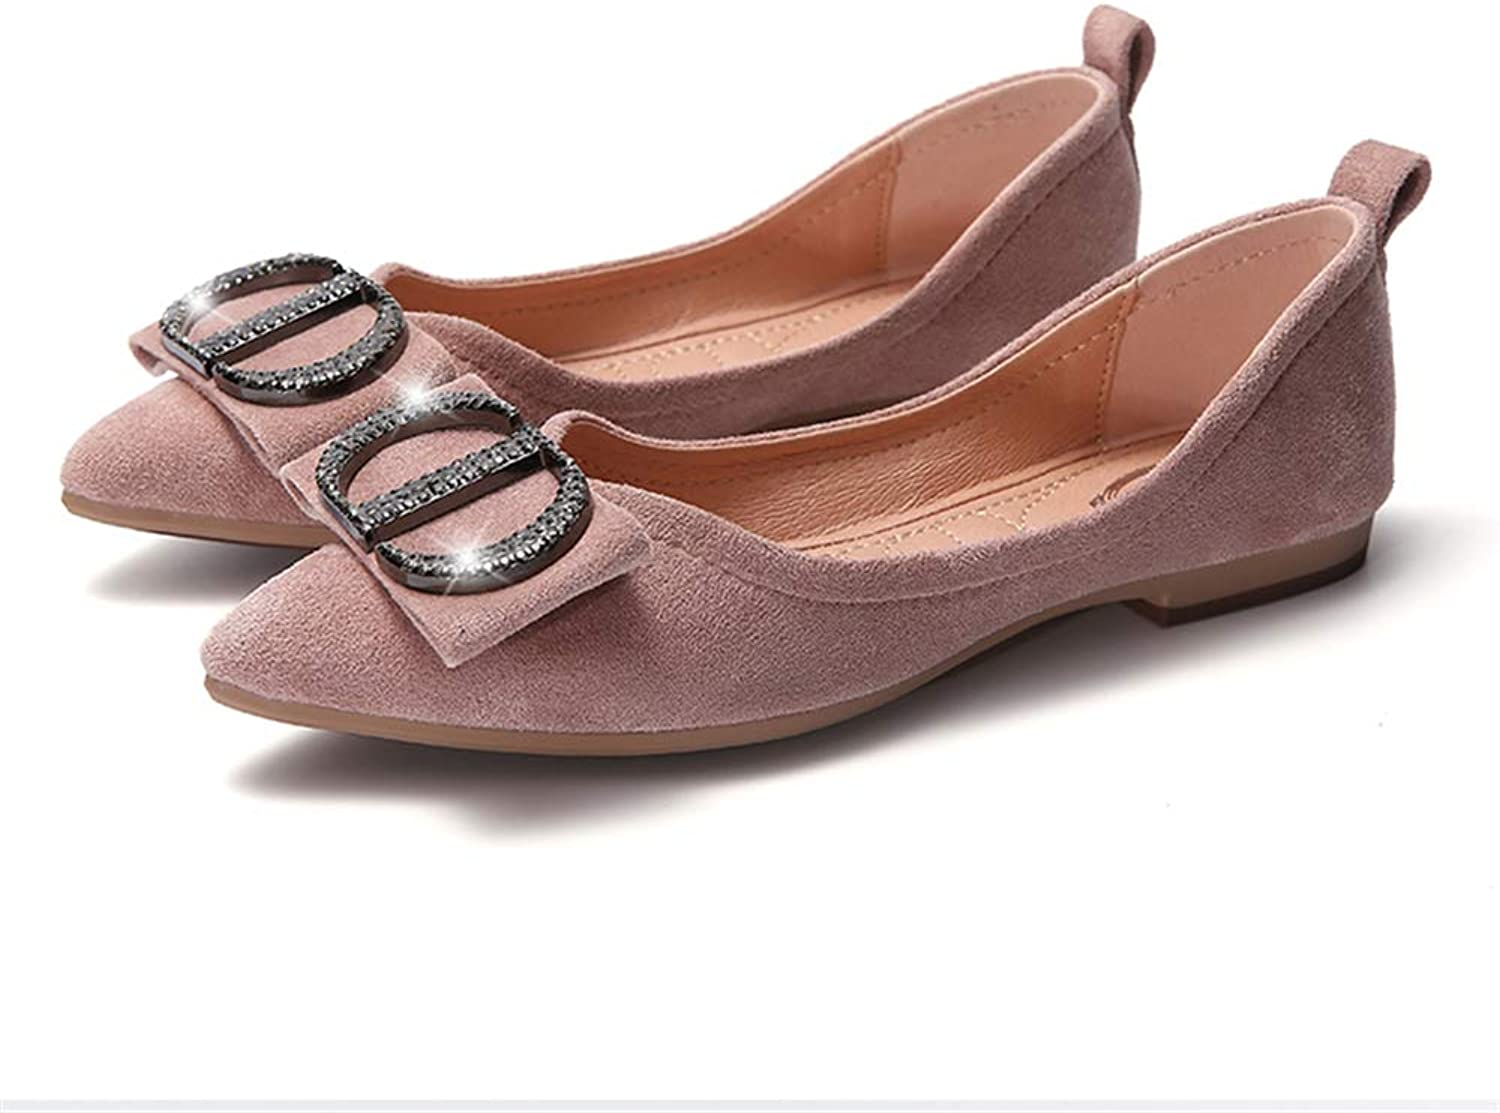 CHENSF Women's Foldable Soft Pointed Ballet Flat shoes Comfortable Non-Slip Flat shoes